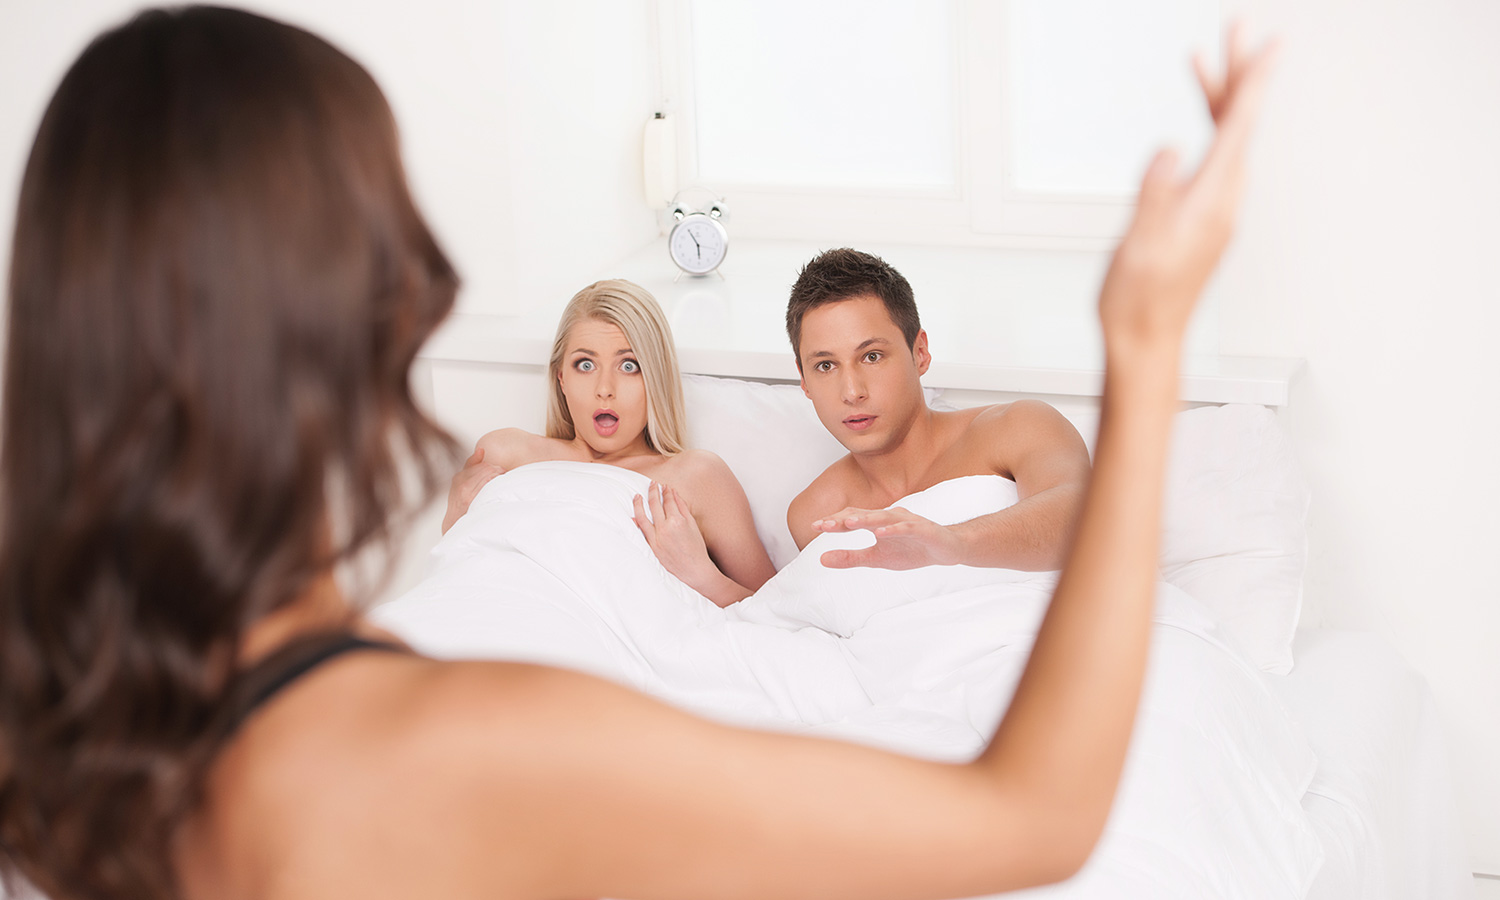 Smart Mattress Will Out Your Lying, Cheating Spouse | Tom's